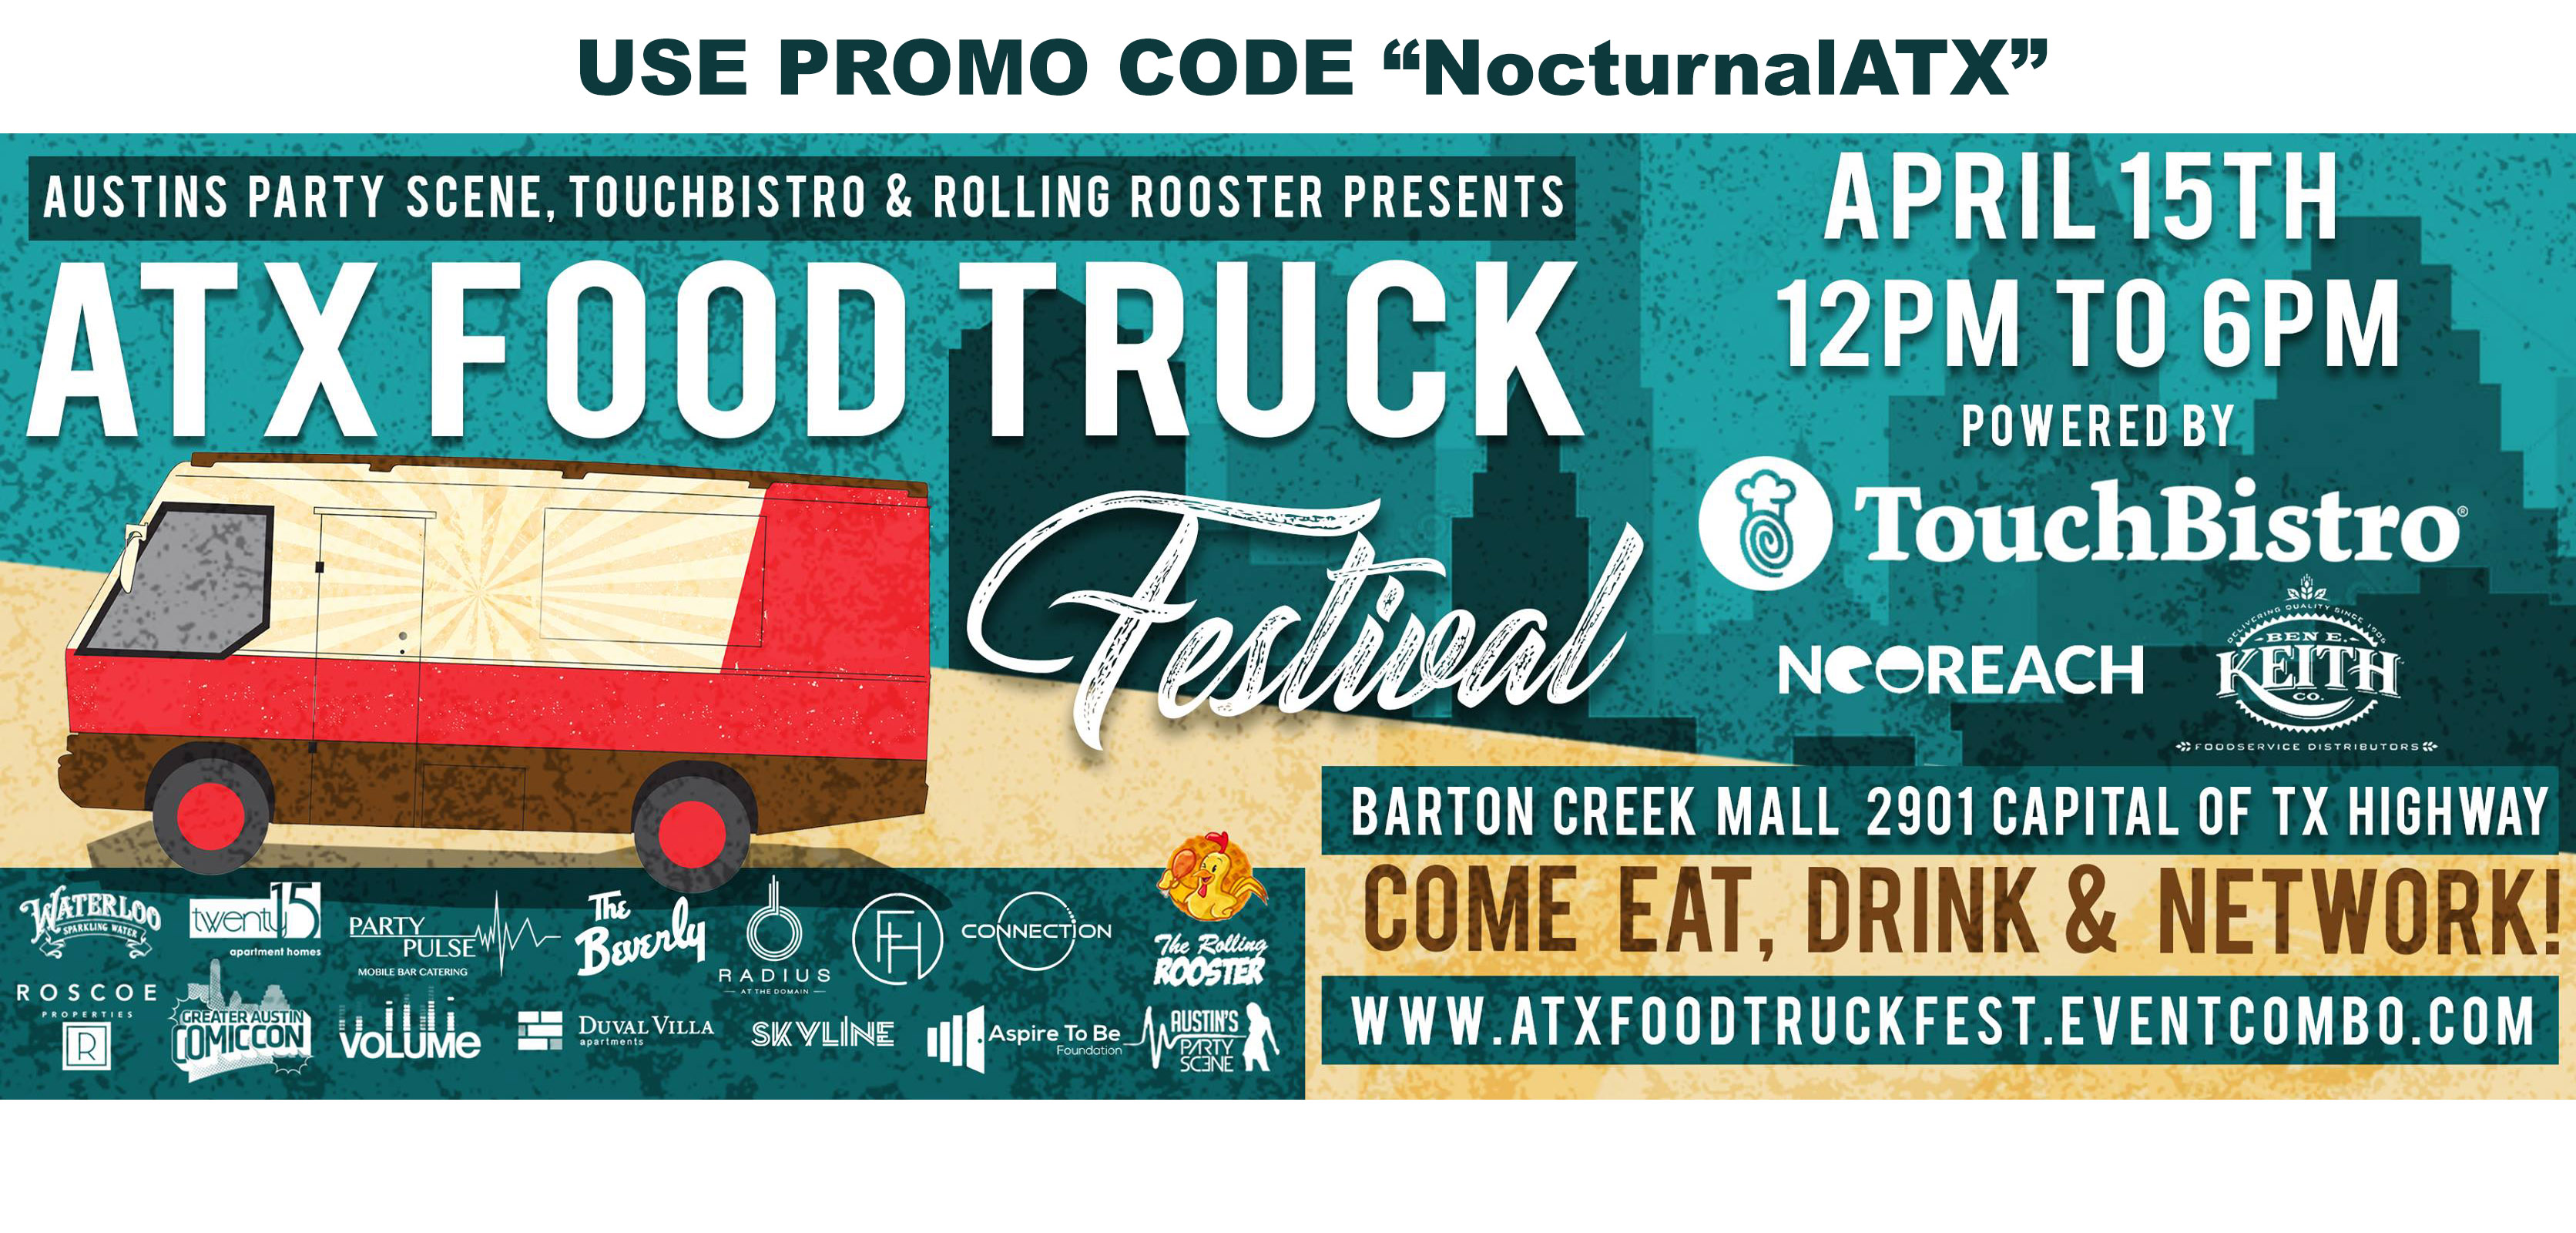 ATX Food Truck Festival Promo Code Tickets Discount Austin 2018 things to do april 15th 2018 sunday in austin texas